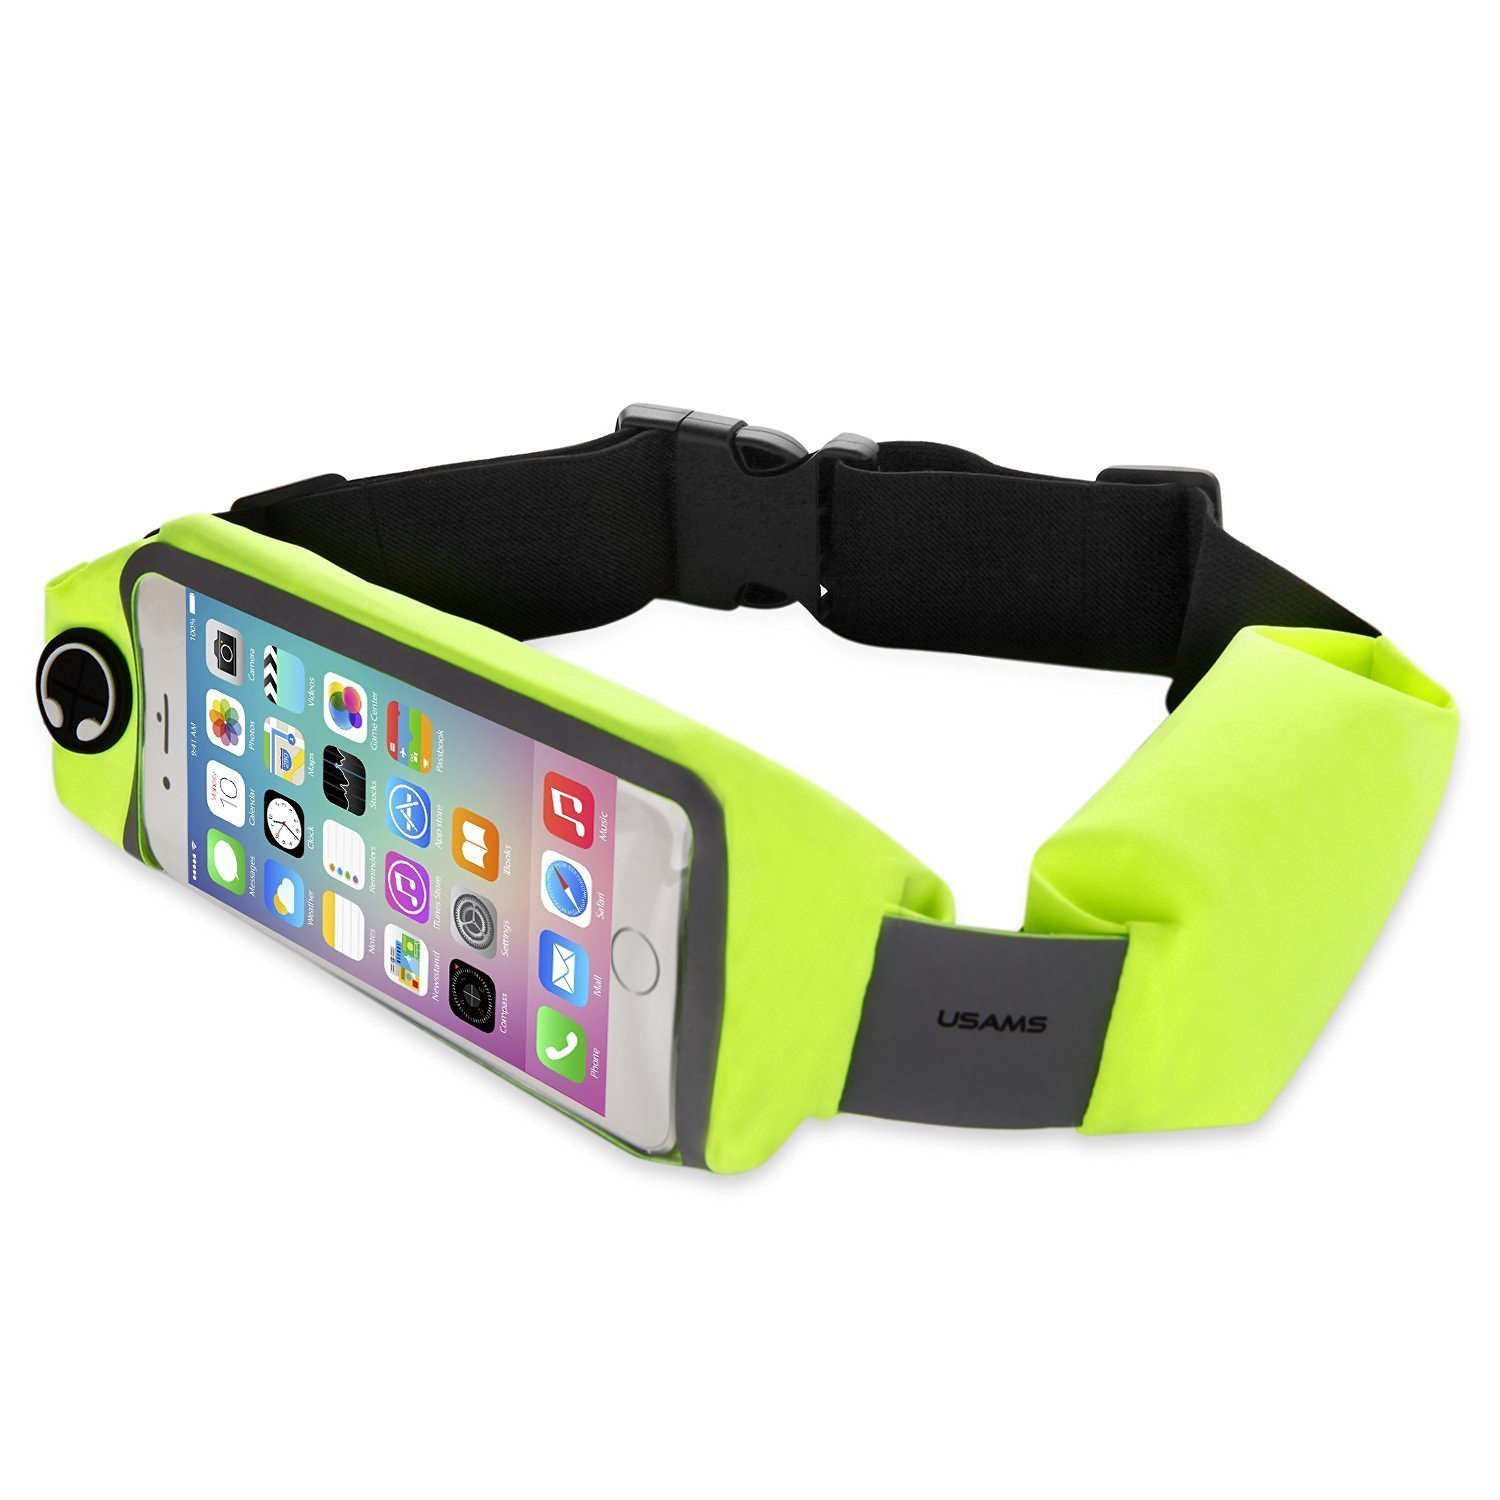 COJOY Running Belt Runner Waist Pack, i Large Expandable Waterproof Waist Bag Extra Pocket Fitness Belt with Reflective Stripes for Night Ride Fun Run 5.5'' Screen for Cell Phone 100%